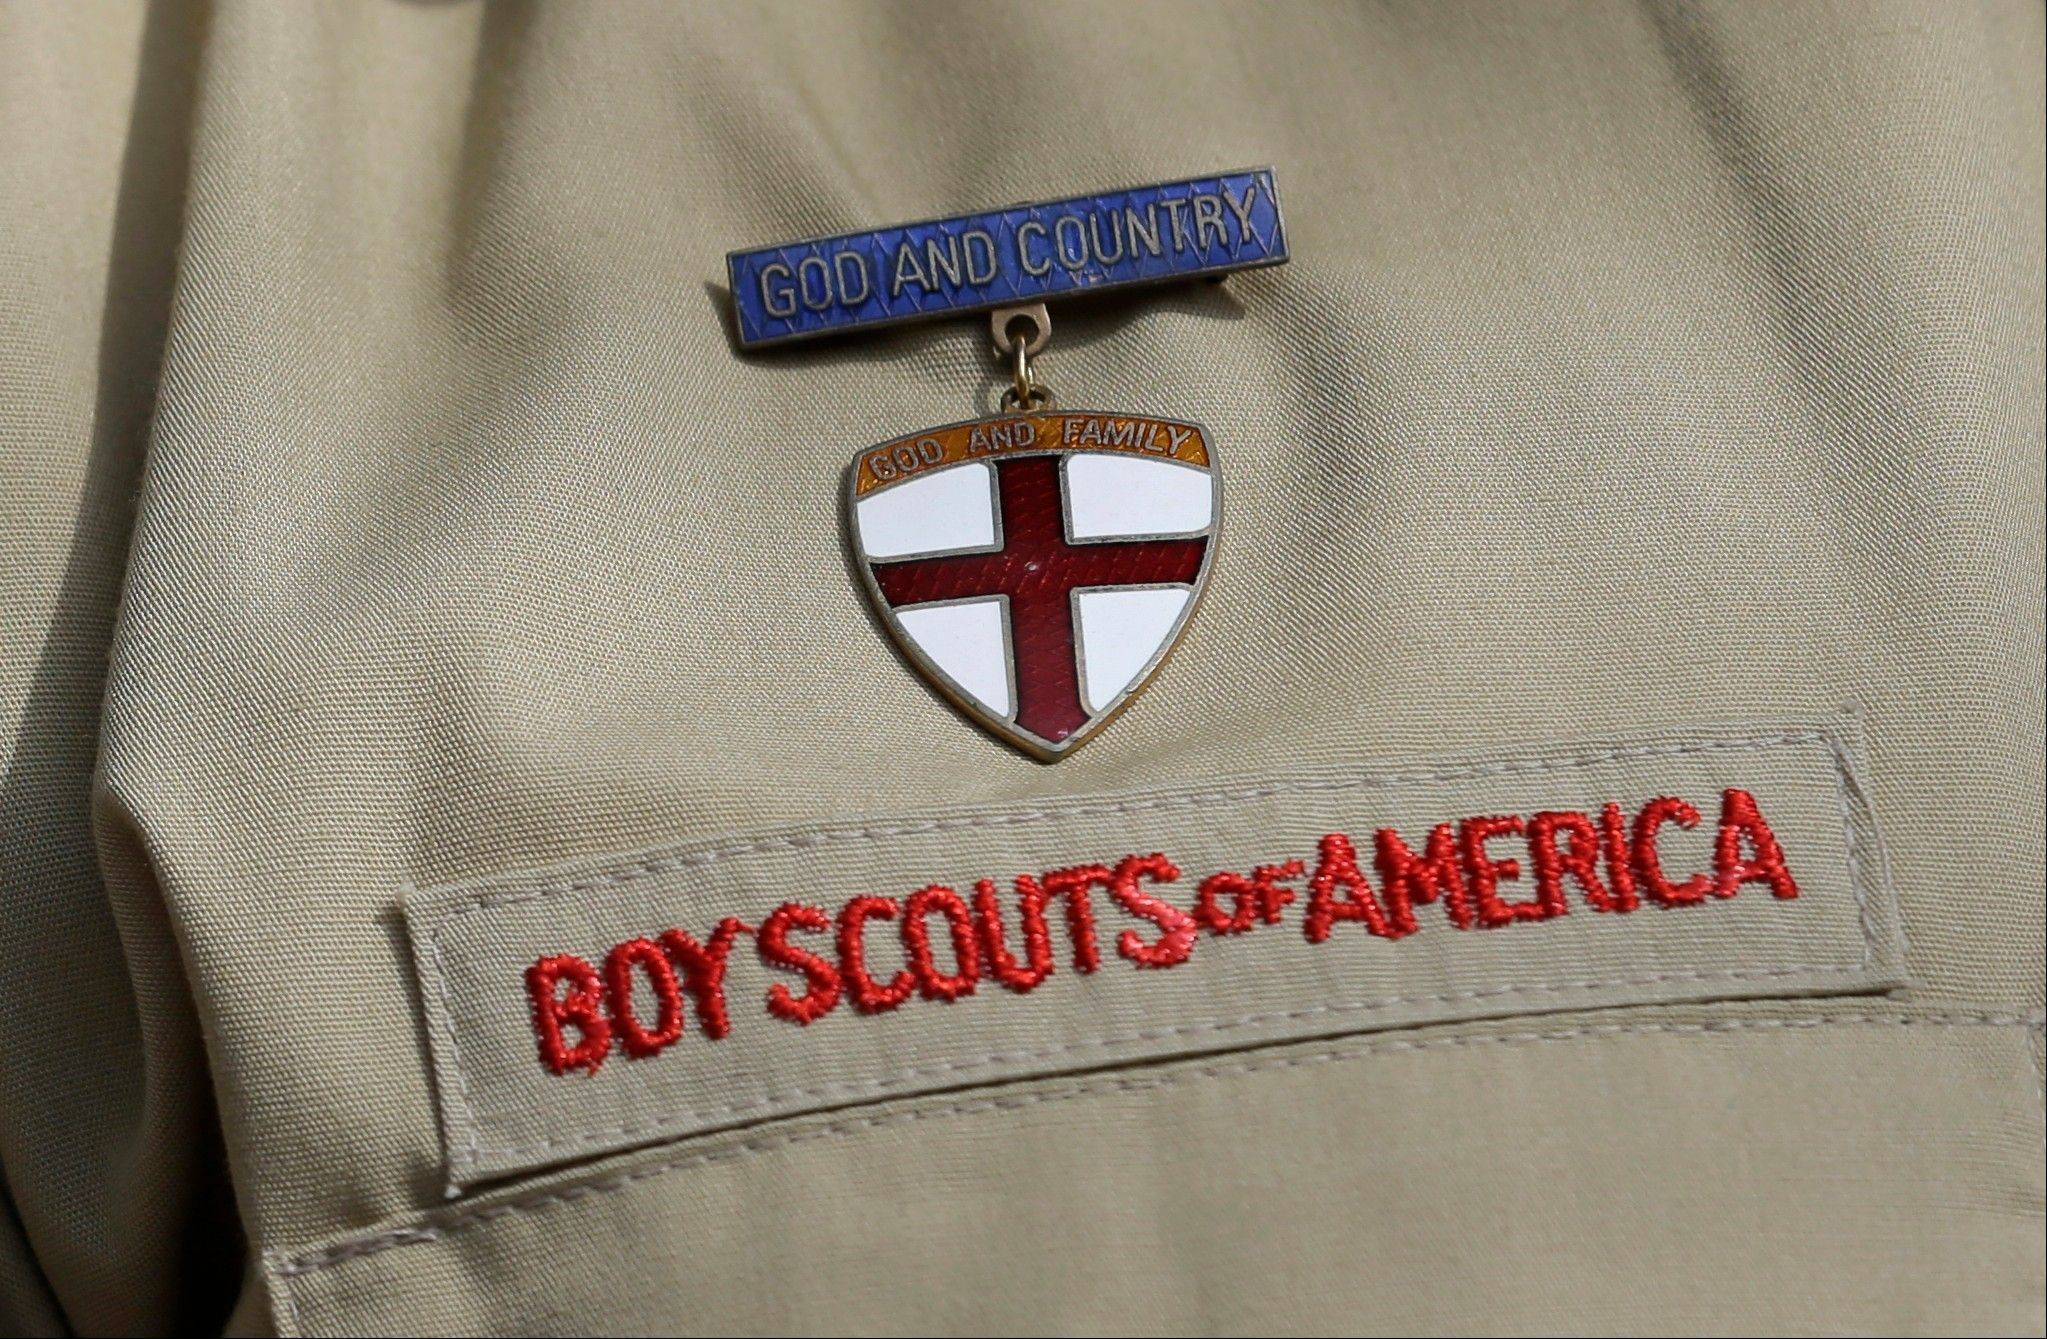 The Boy Scouts of America's national executive board has delayed a decision on whether to lift its long-standing ban on gay scouts and leaders.